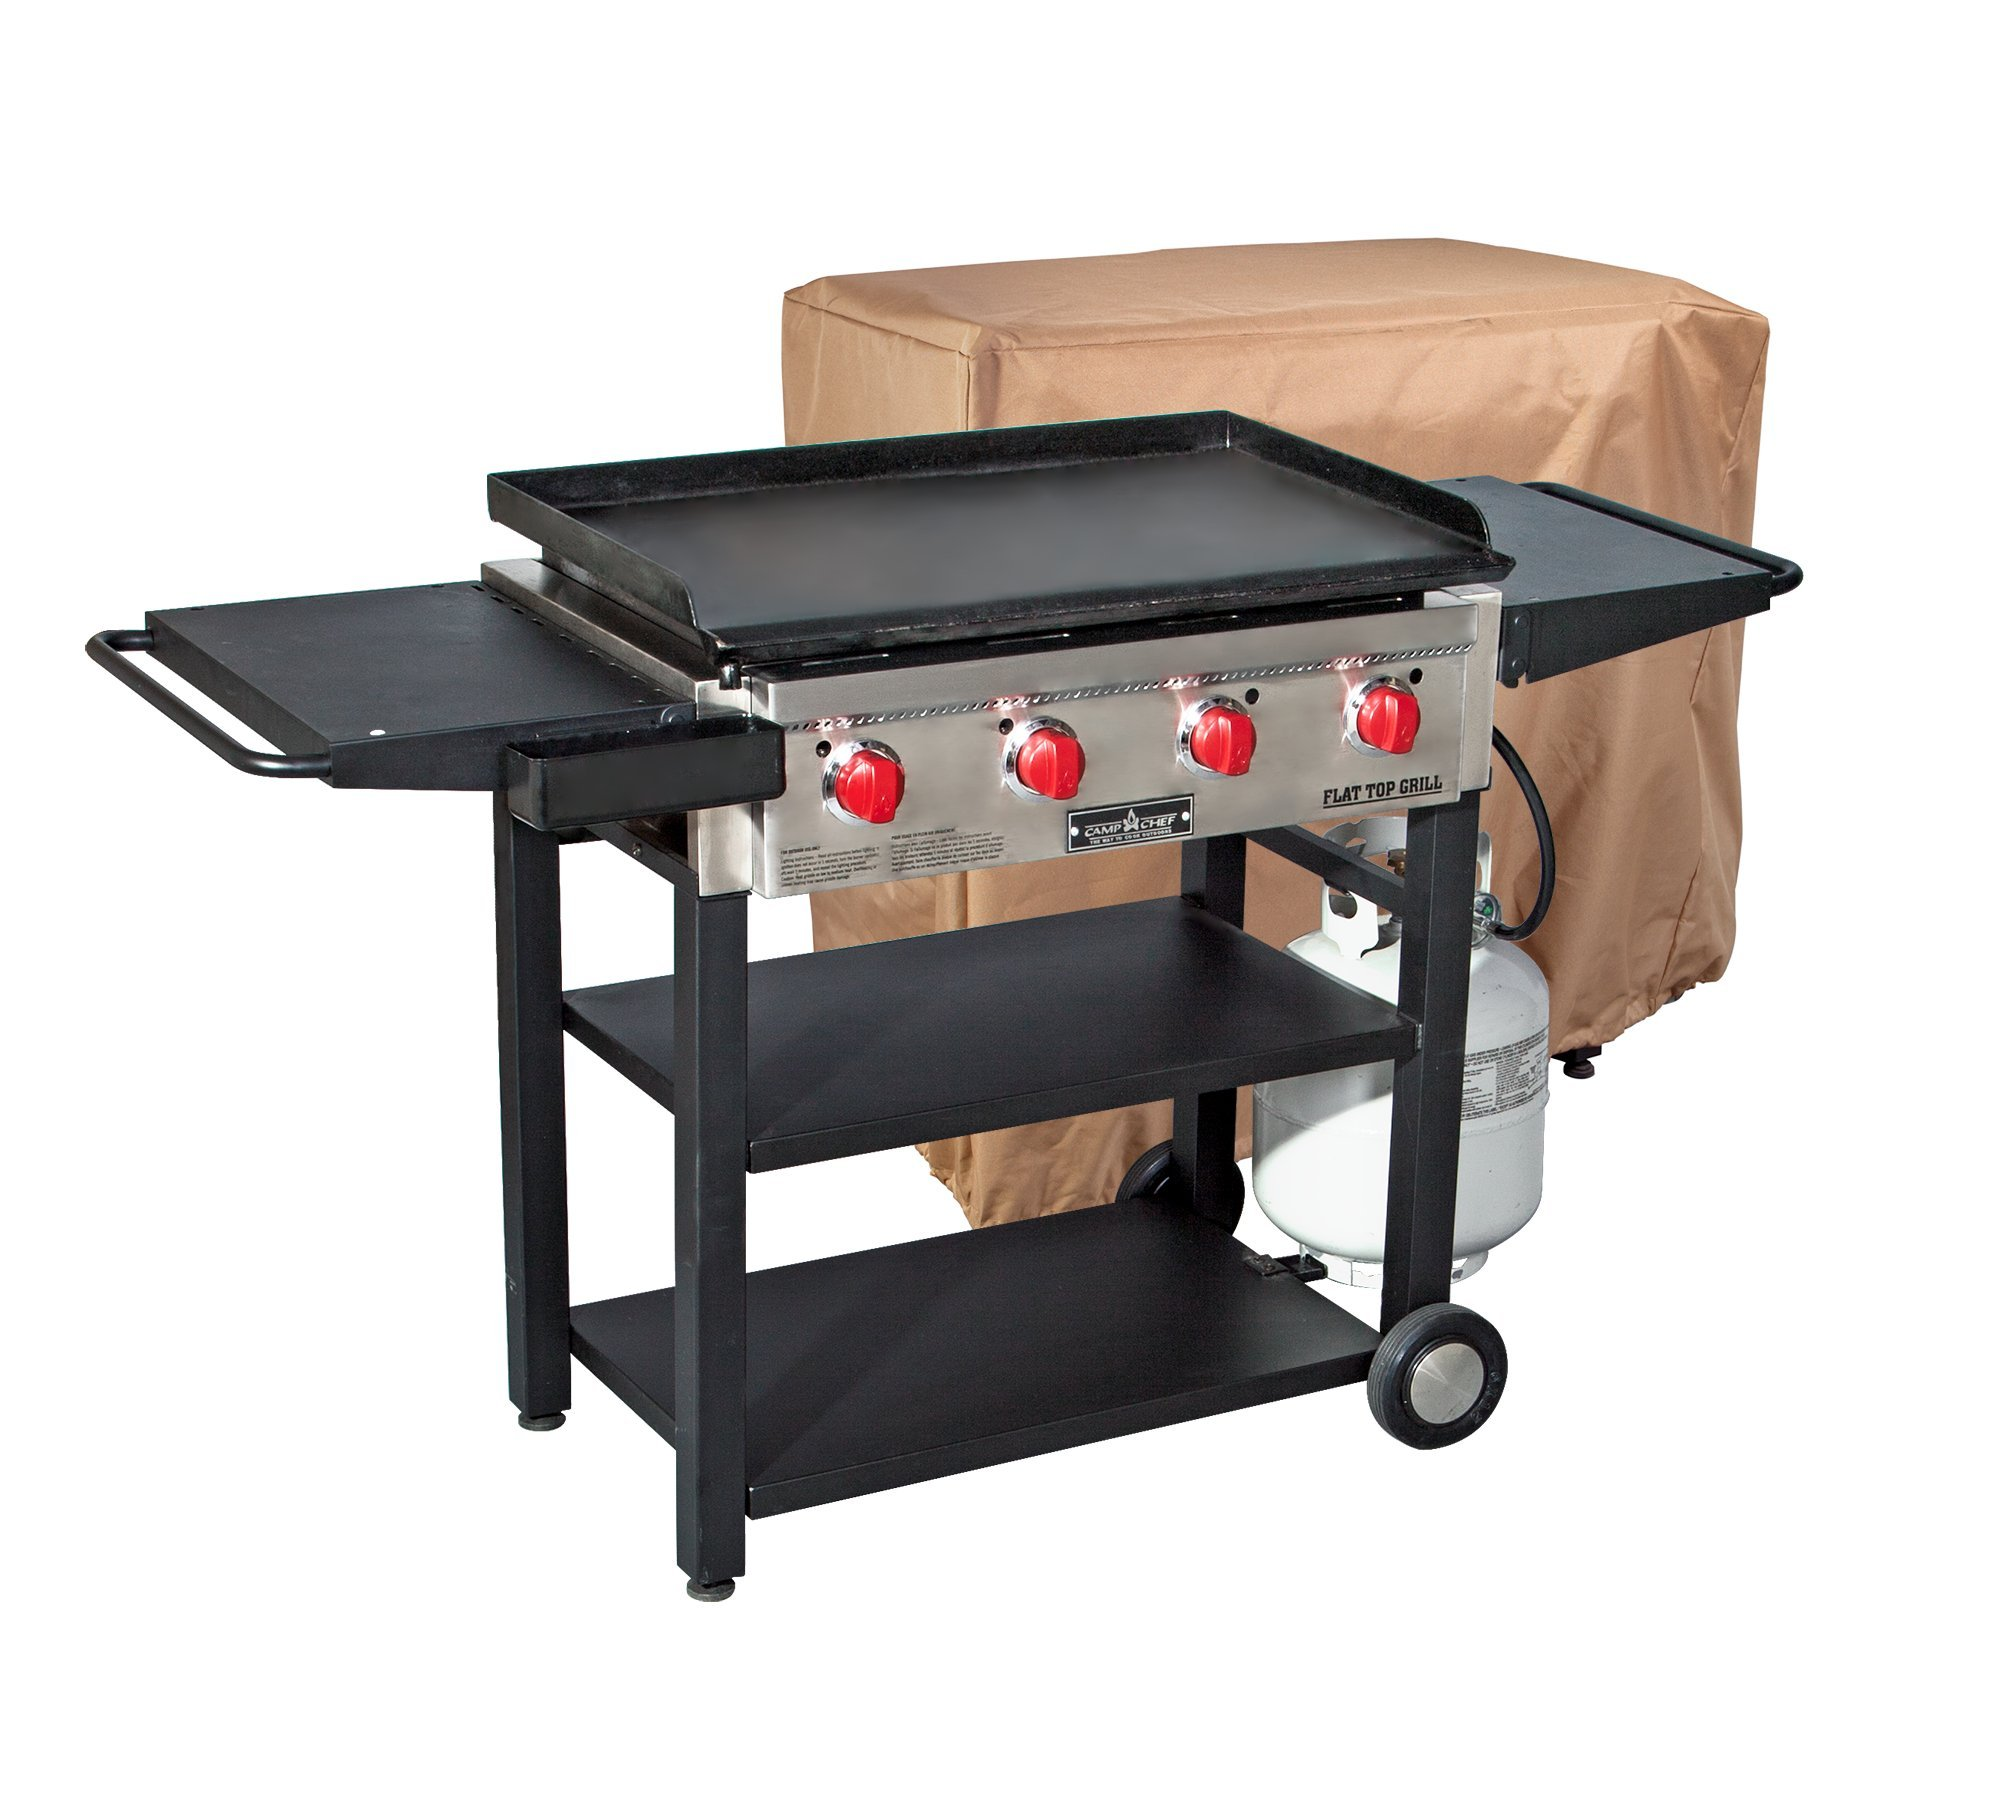 Camp Chef Flat Top Grill 600 with Patio Cover - Bundle